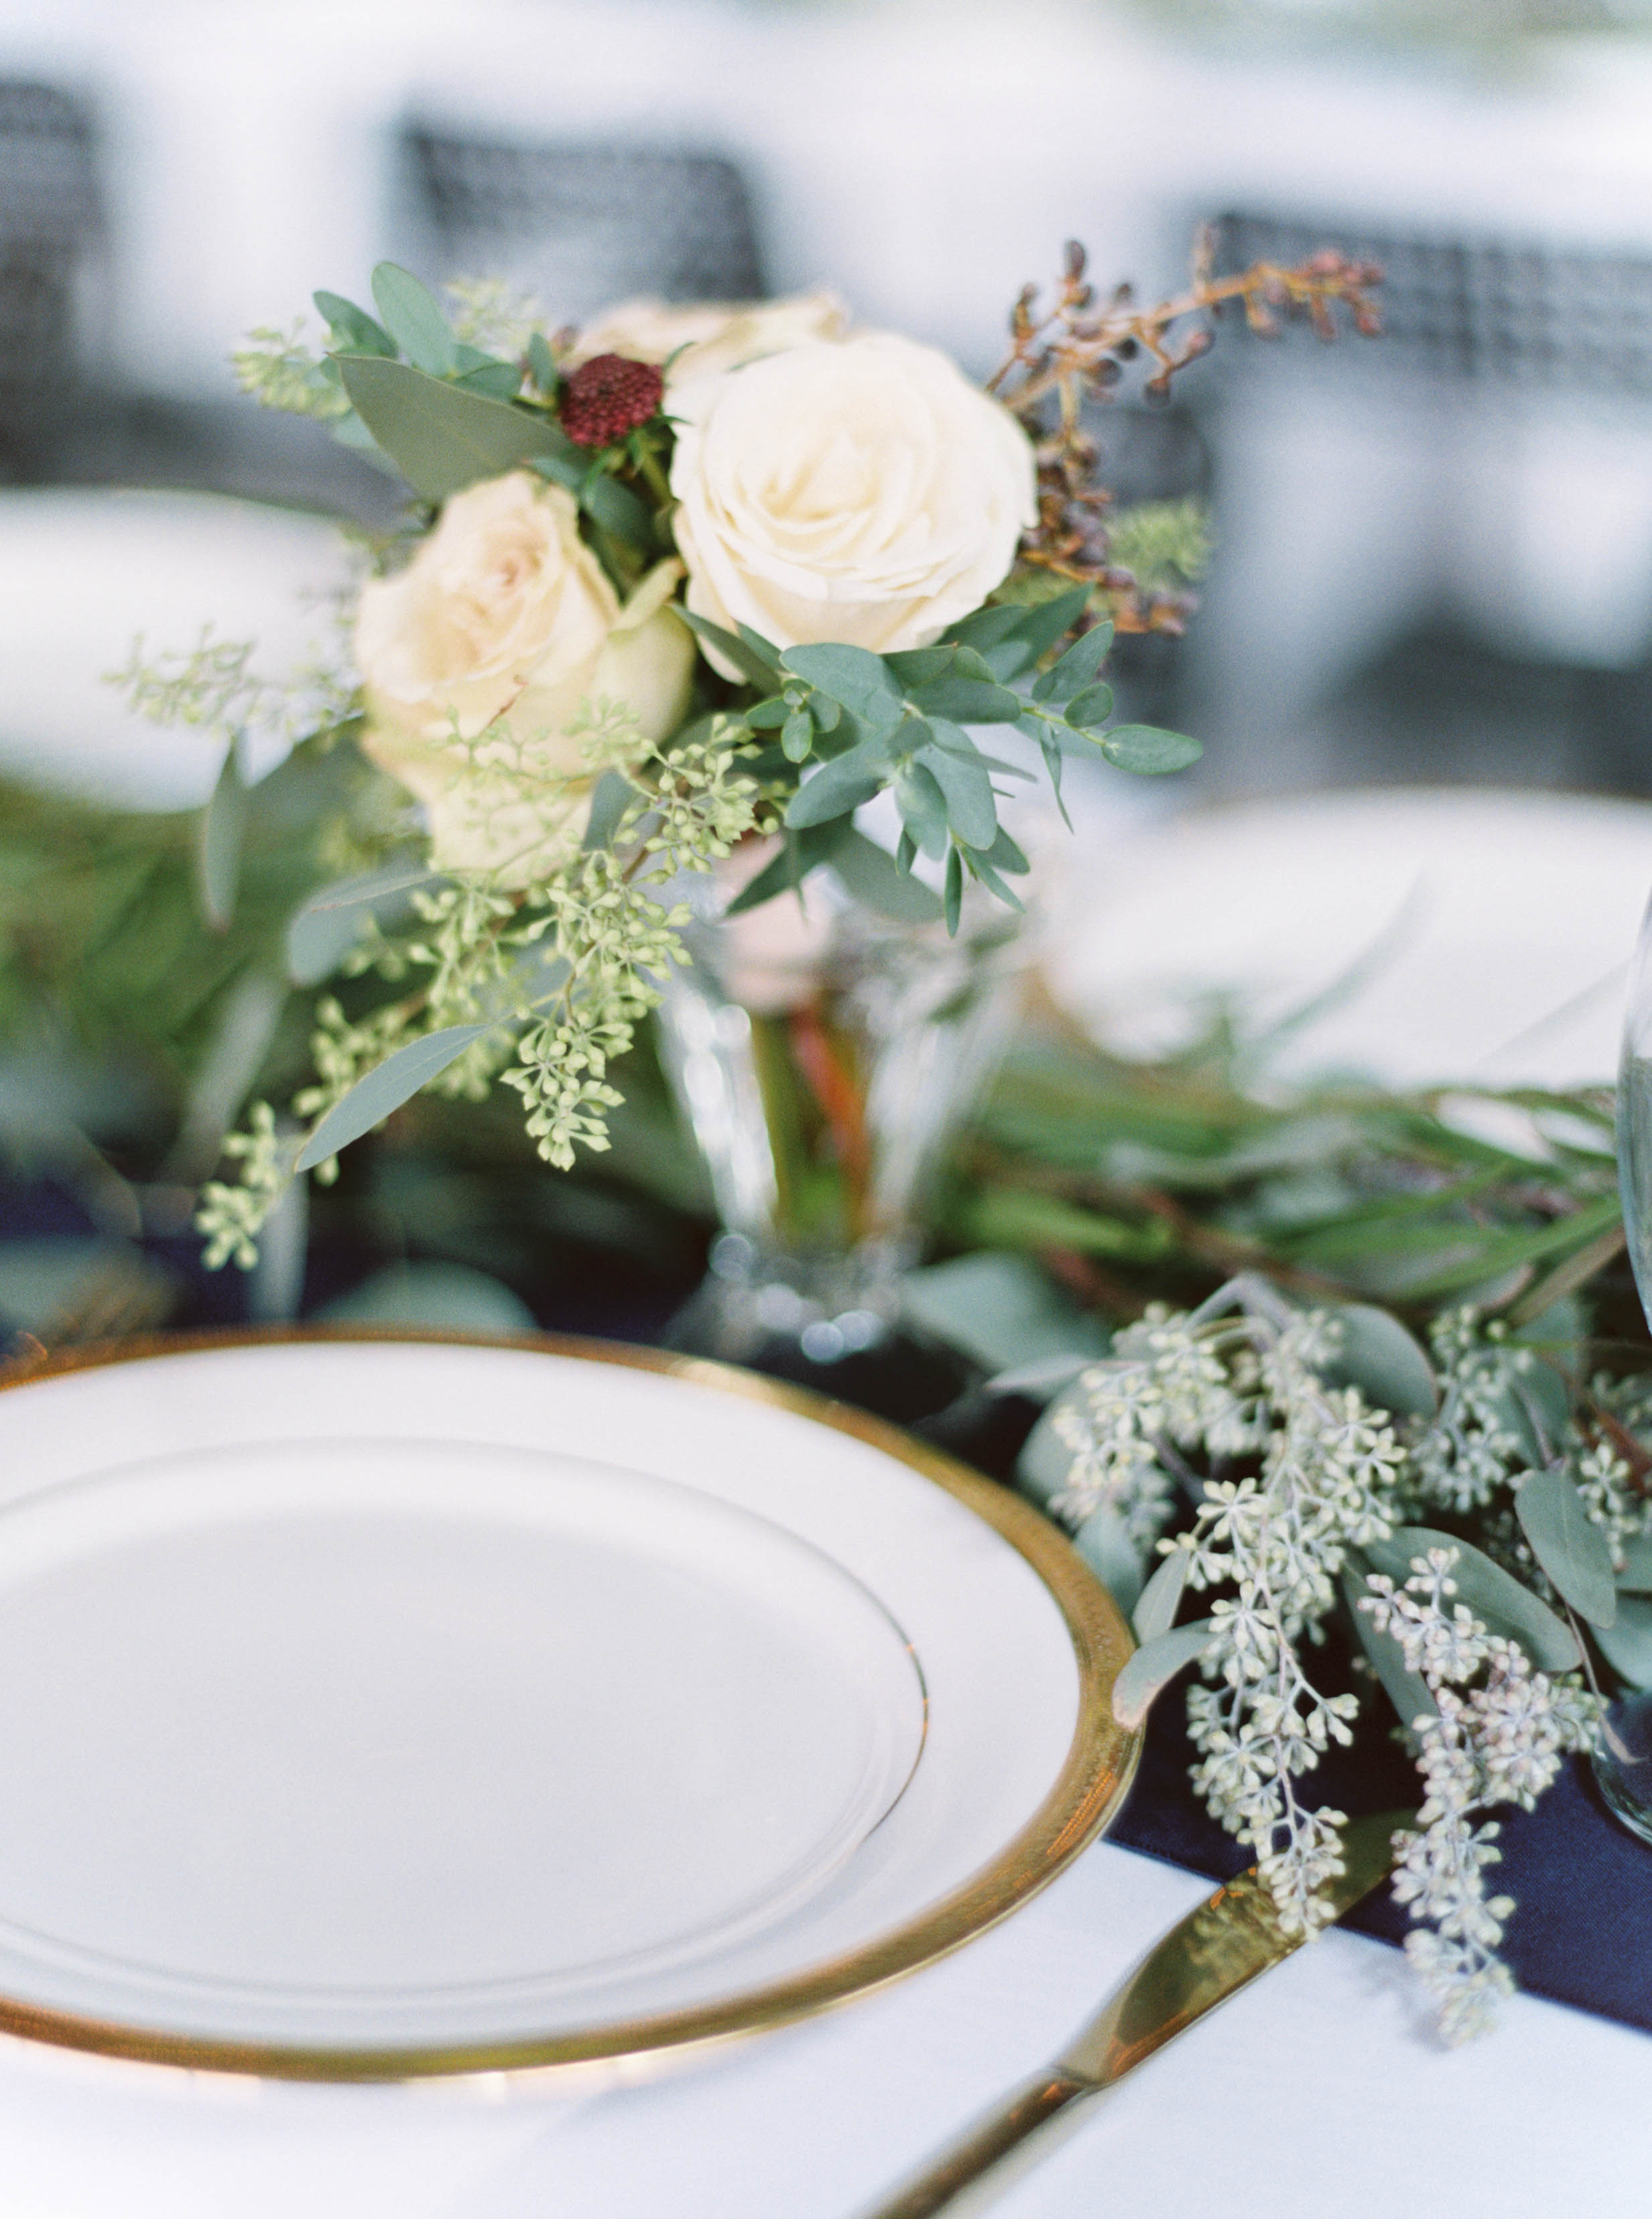 Nosegays for every female guest double as centerpieces // Destination Wedding Florist